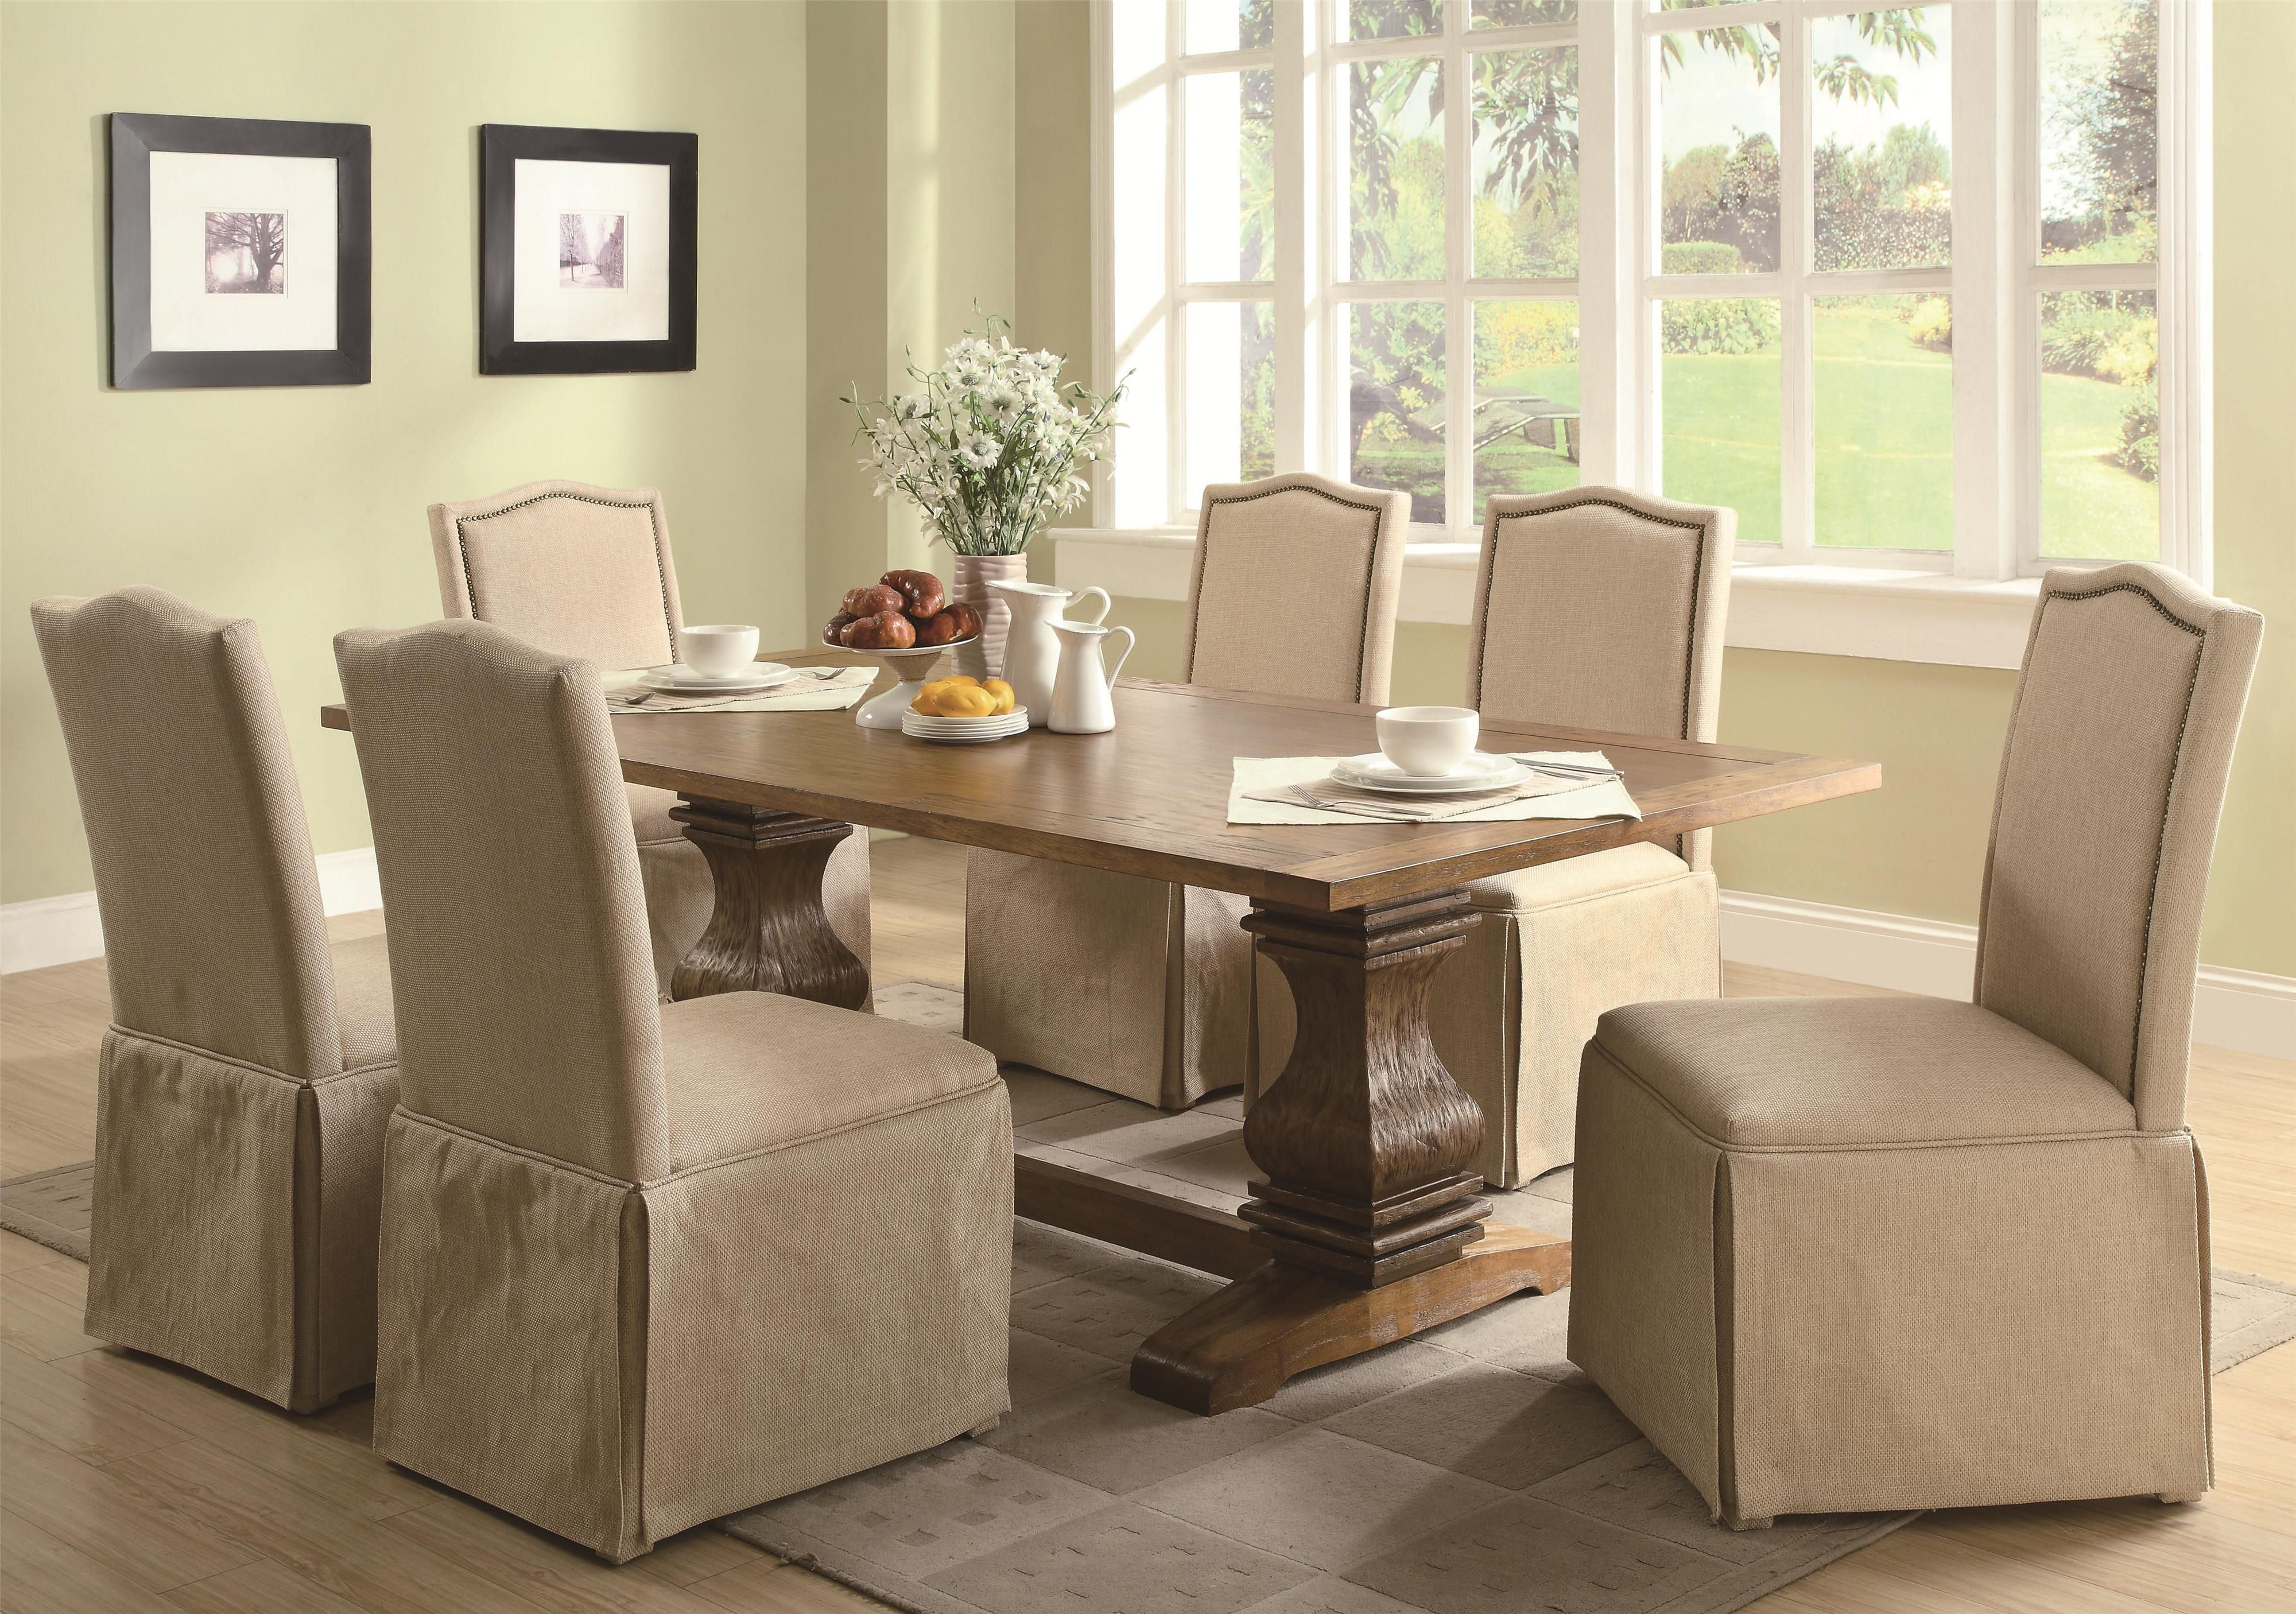 Uses of best parson dining room chairs | Bathroom ...